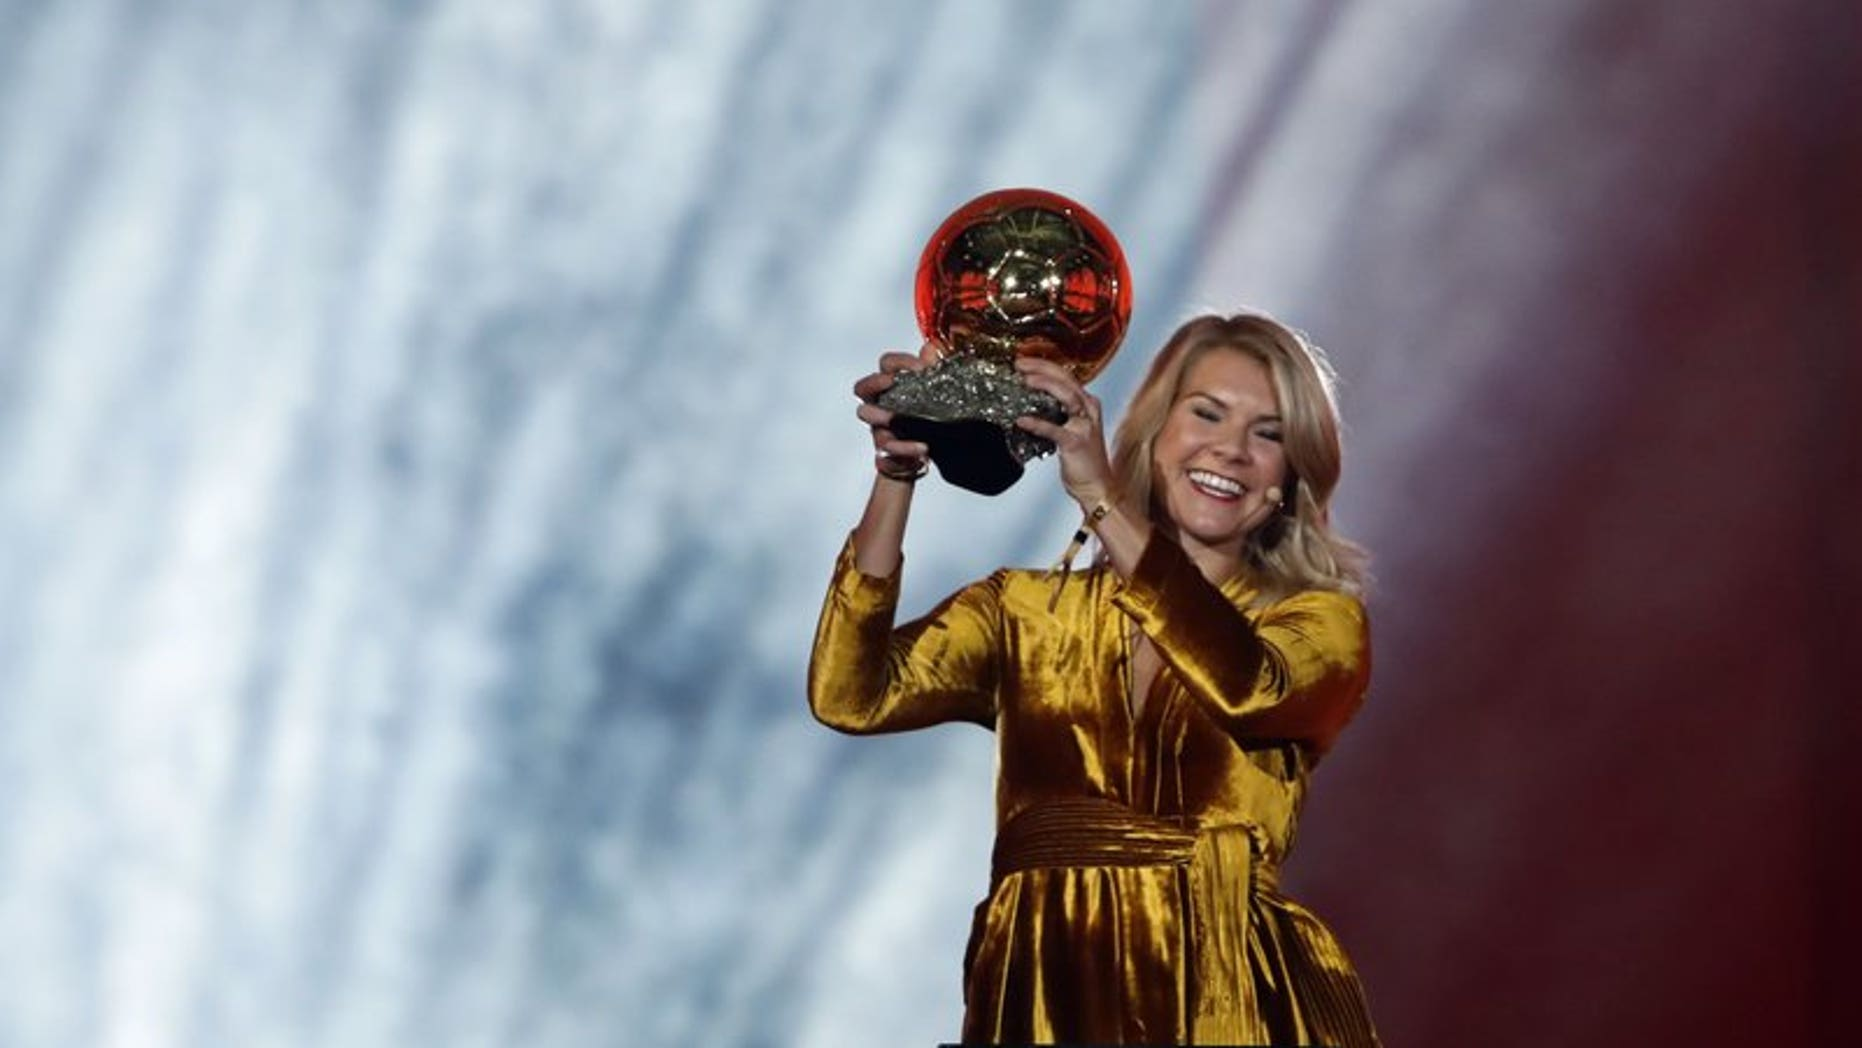 Olympique Lyonnais' Ada Hegerberg celebrates with the Women's Ballon d'Or award during the Golden Ball award ceremony at the Grand Palais in Paris,